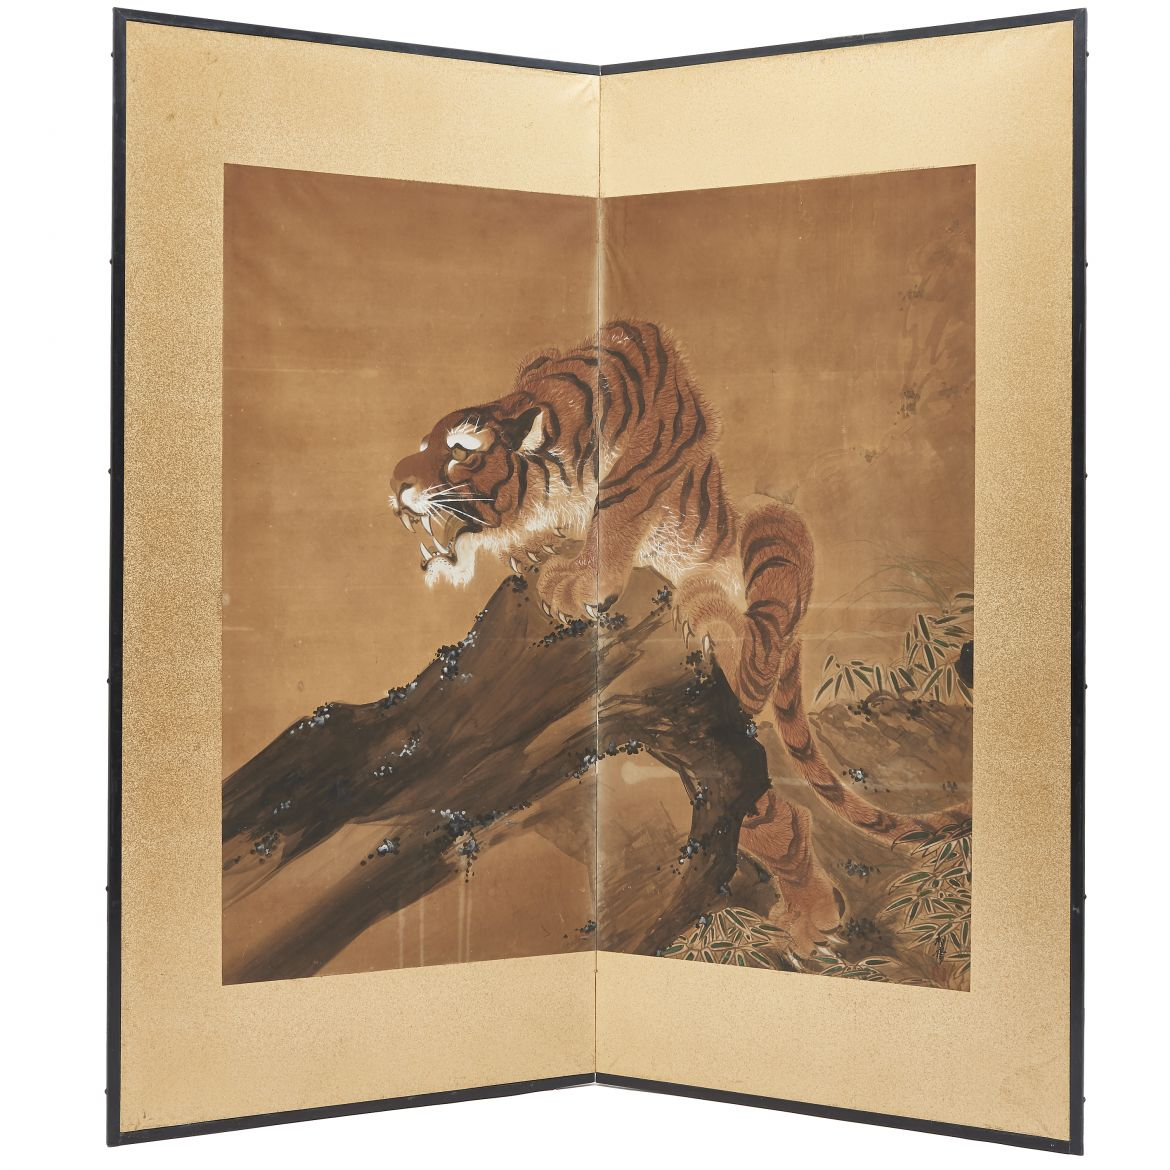 Japanese Screen of Tiger